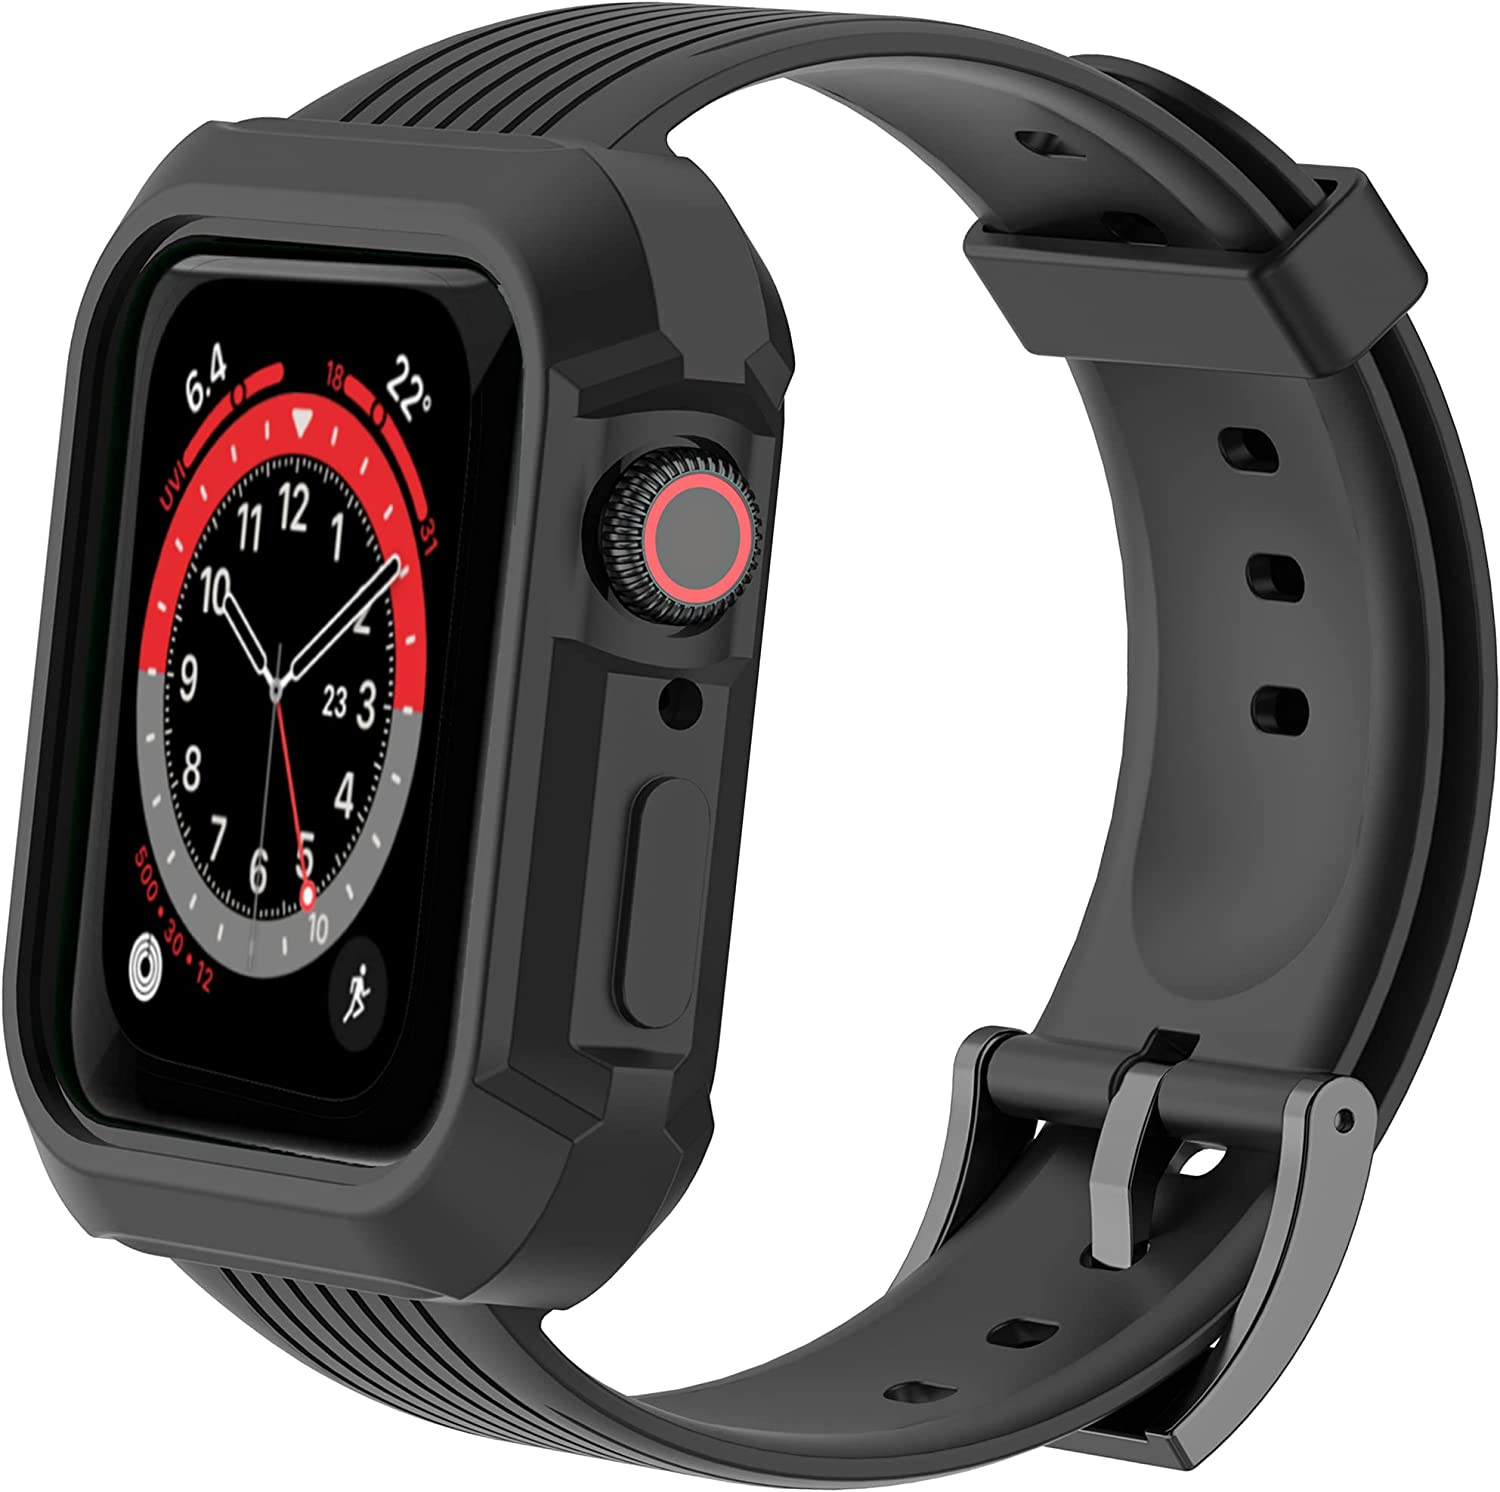 UNKNOK Compatible with Apple Watch Band 38mm 40mm 42mm 44mm Men Women Bands for iWatch Series SE 6 5 4 3 2 1, Rugged Protective Sports Wristband with Bumper Case for Wen Women Teenagers